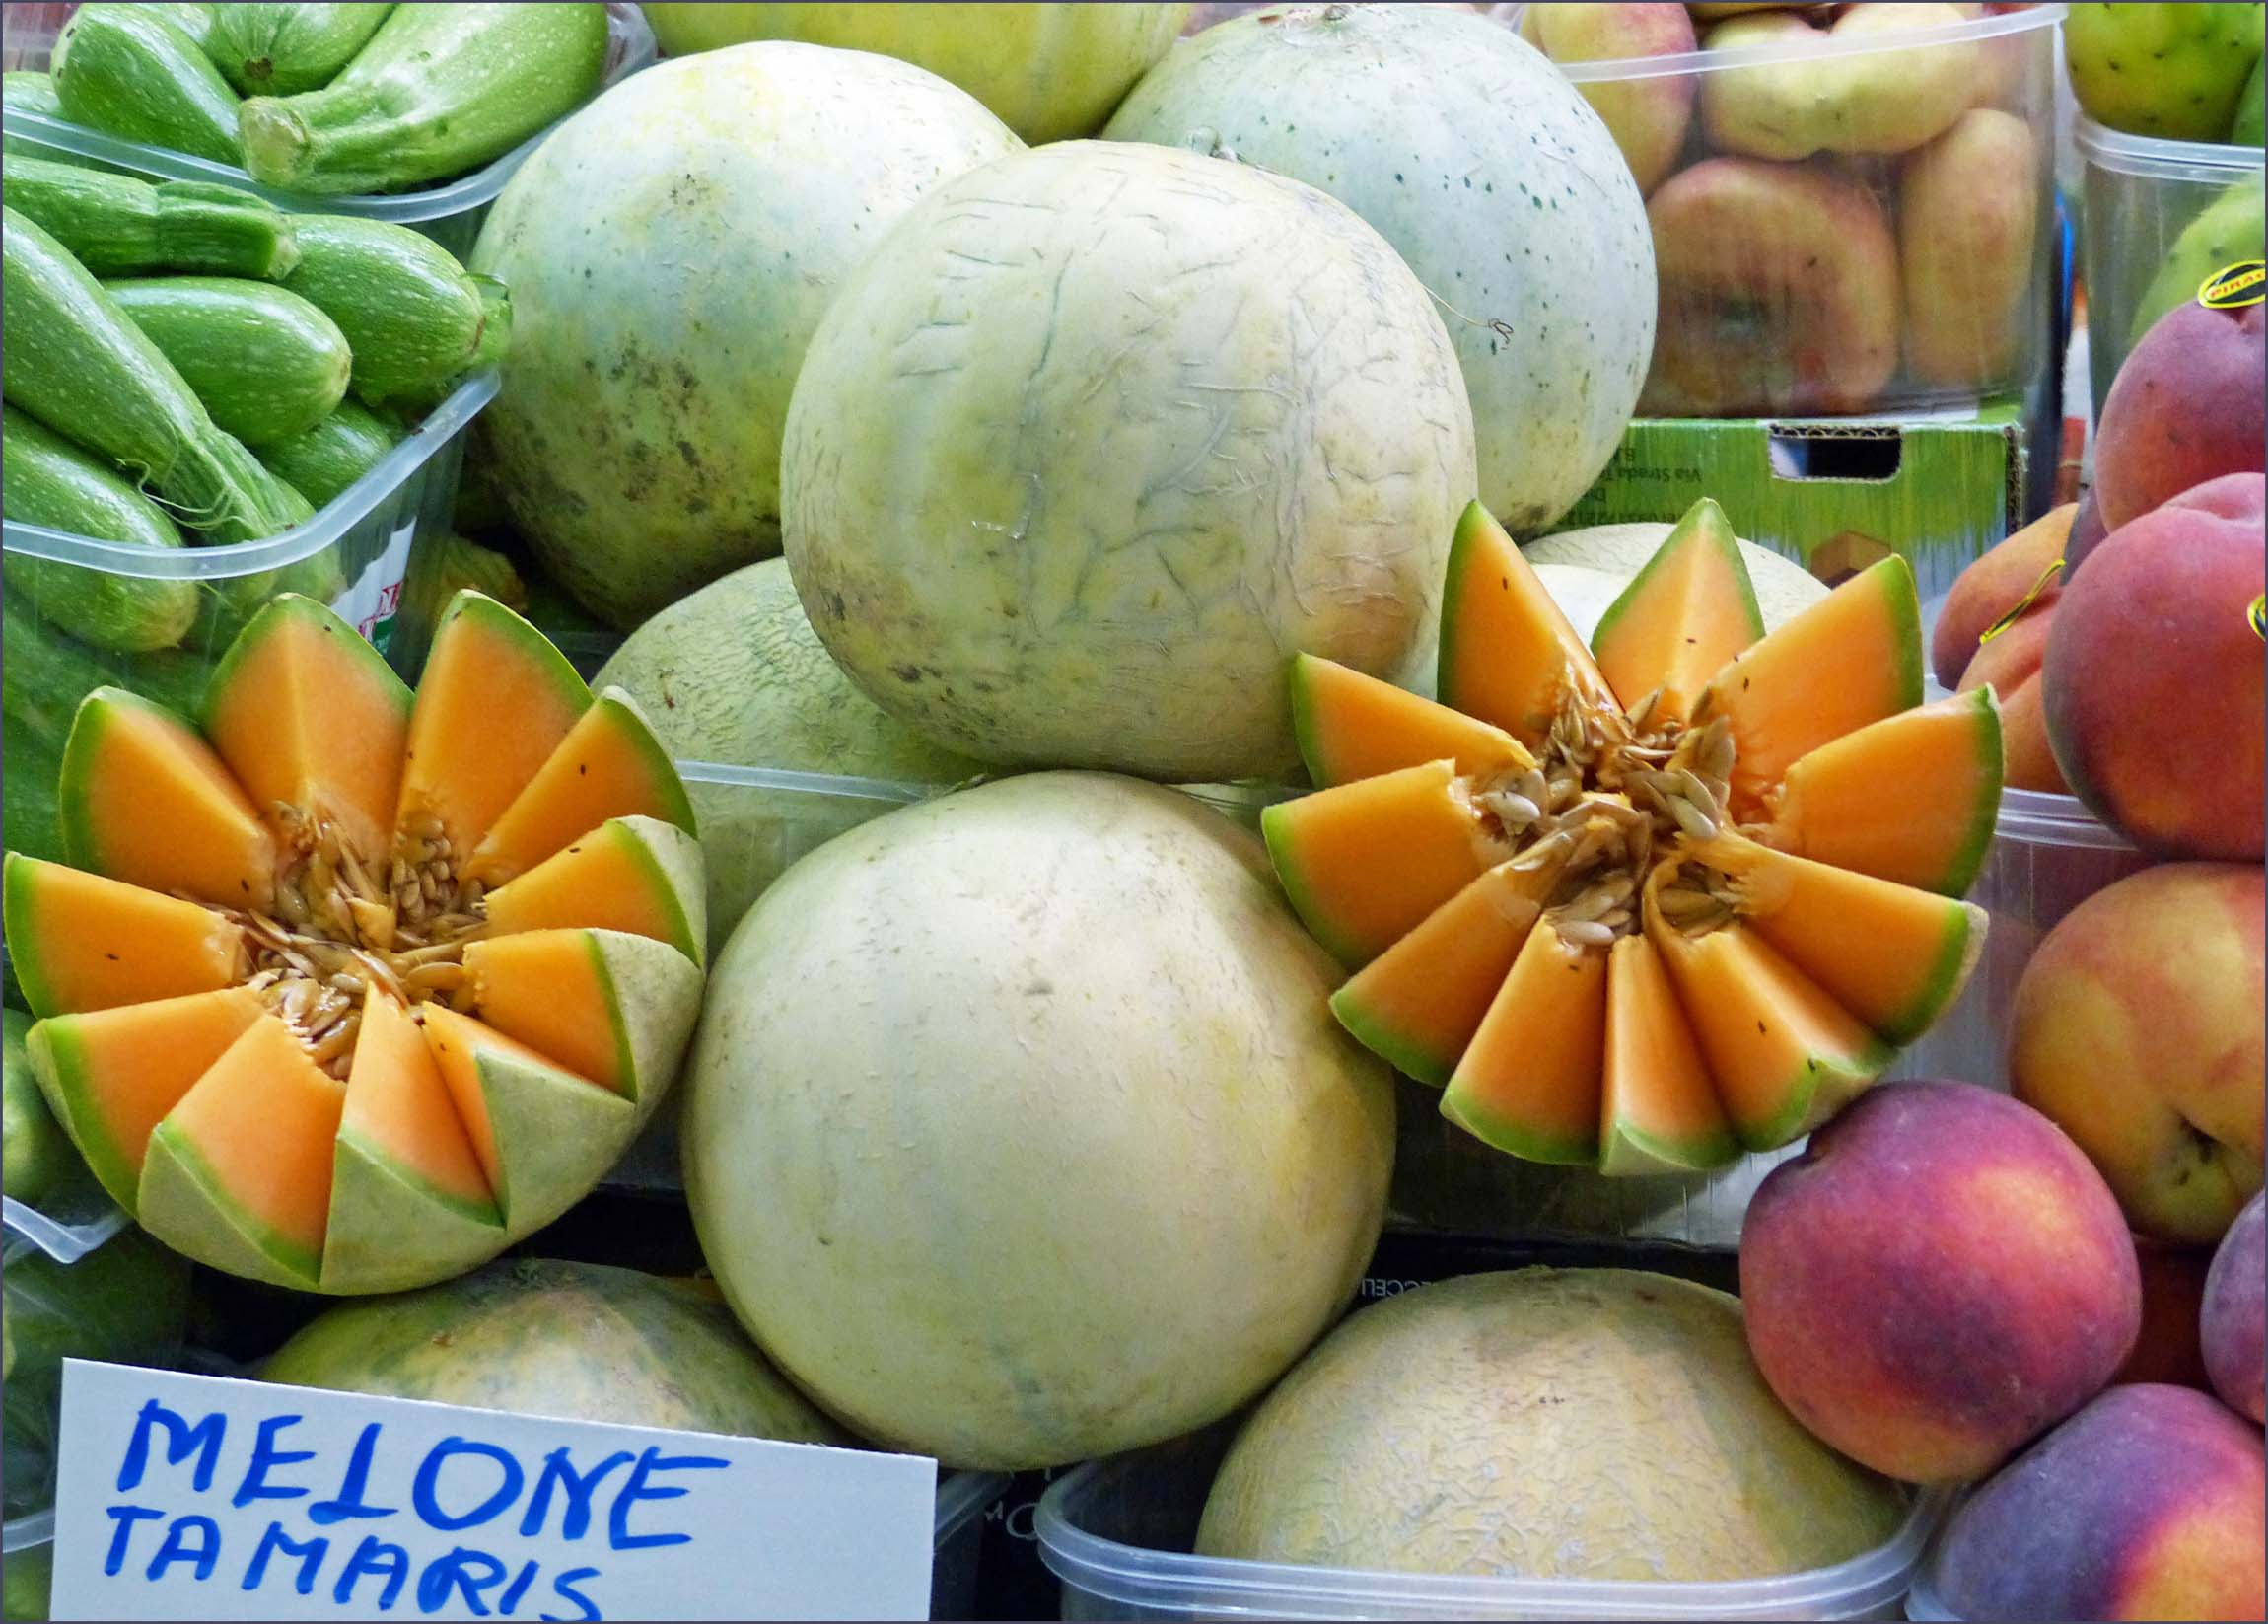 Display of melons and peaches